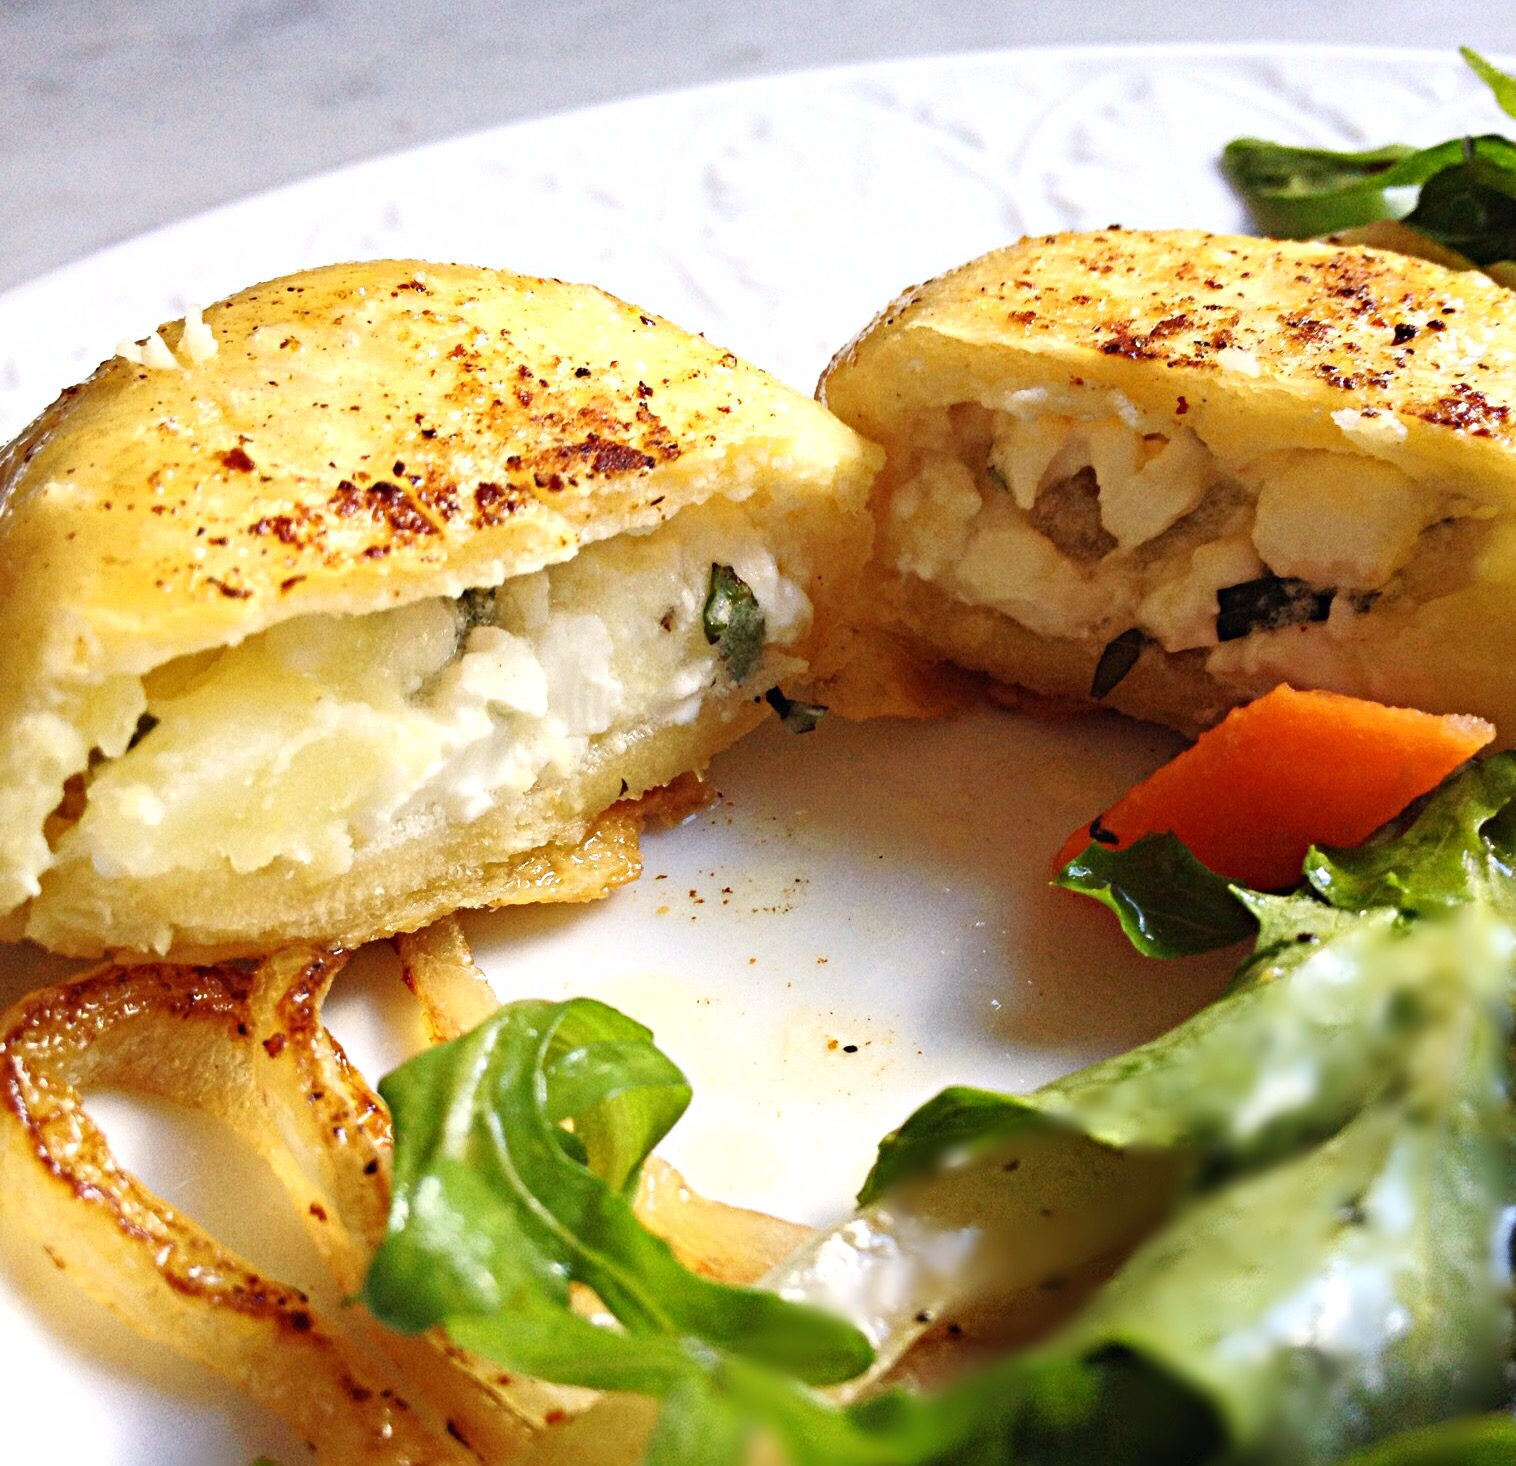 Photo Cheese and Potato Pierogi cut in half to reveal filling